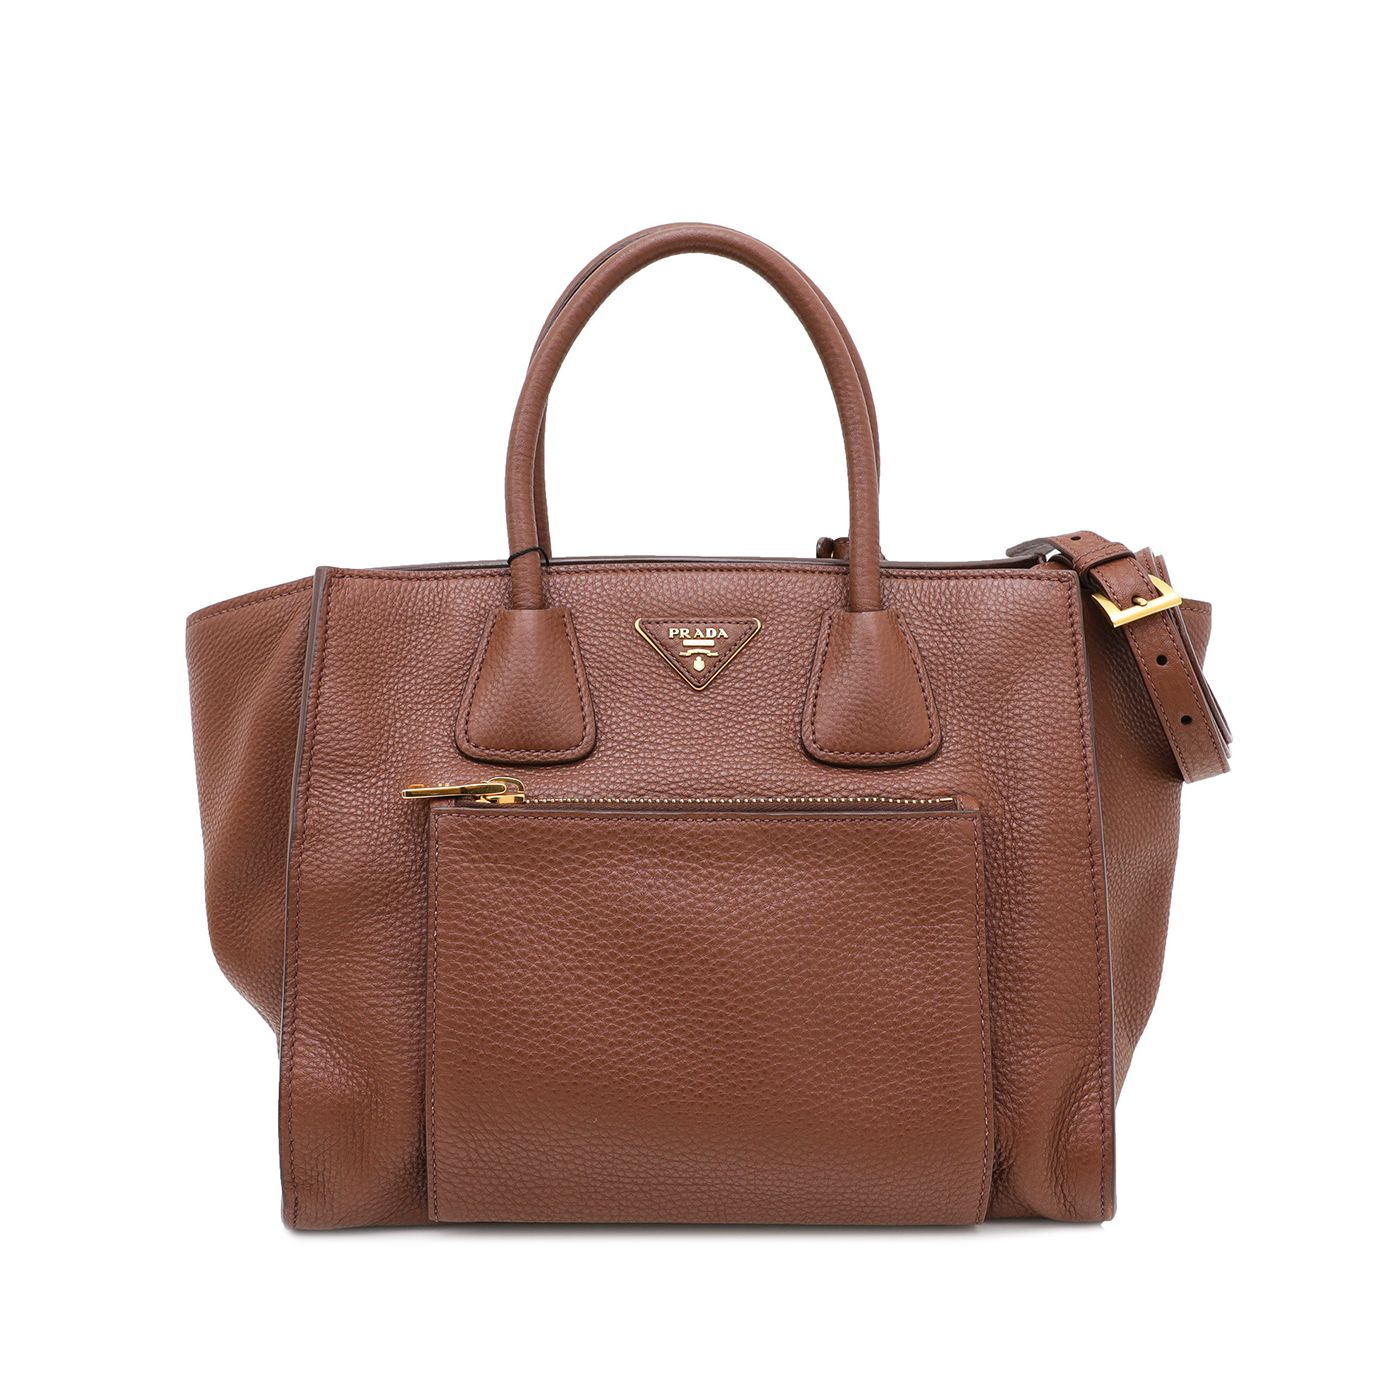 Prada Brown Vitello Daino Front Pocket Wing Convertible Tote Bag